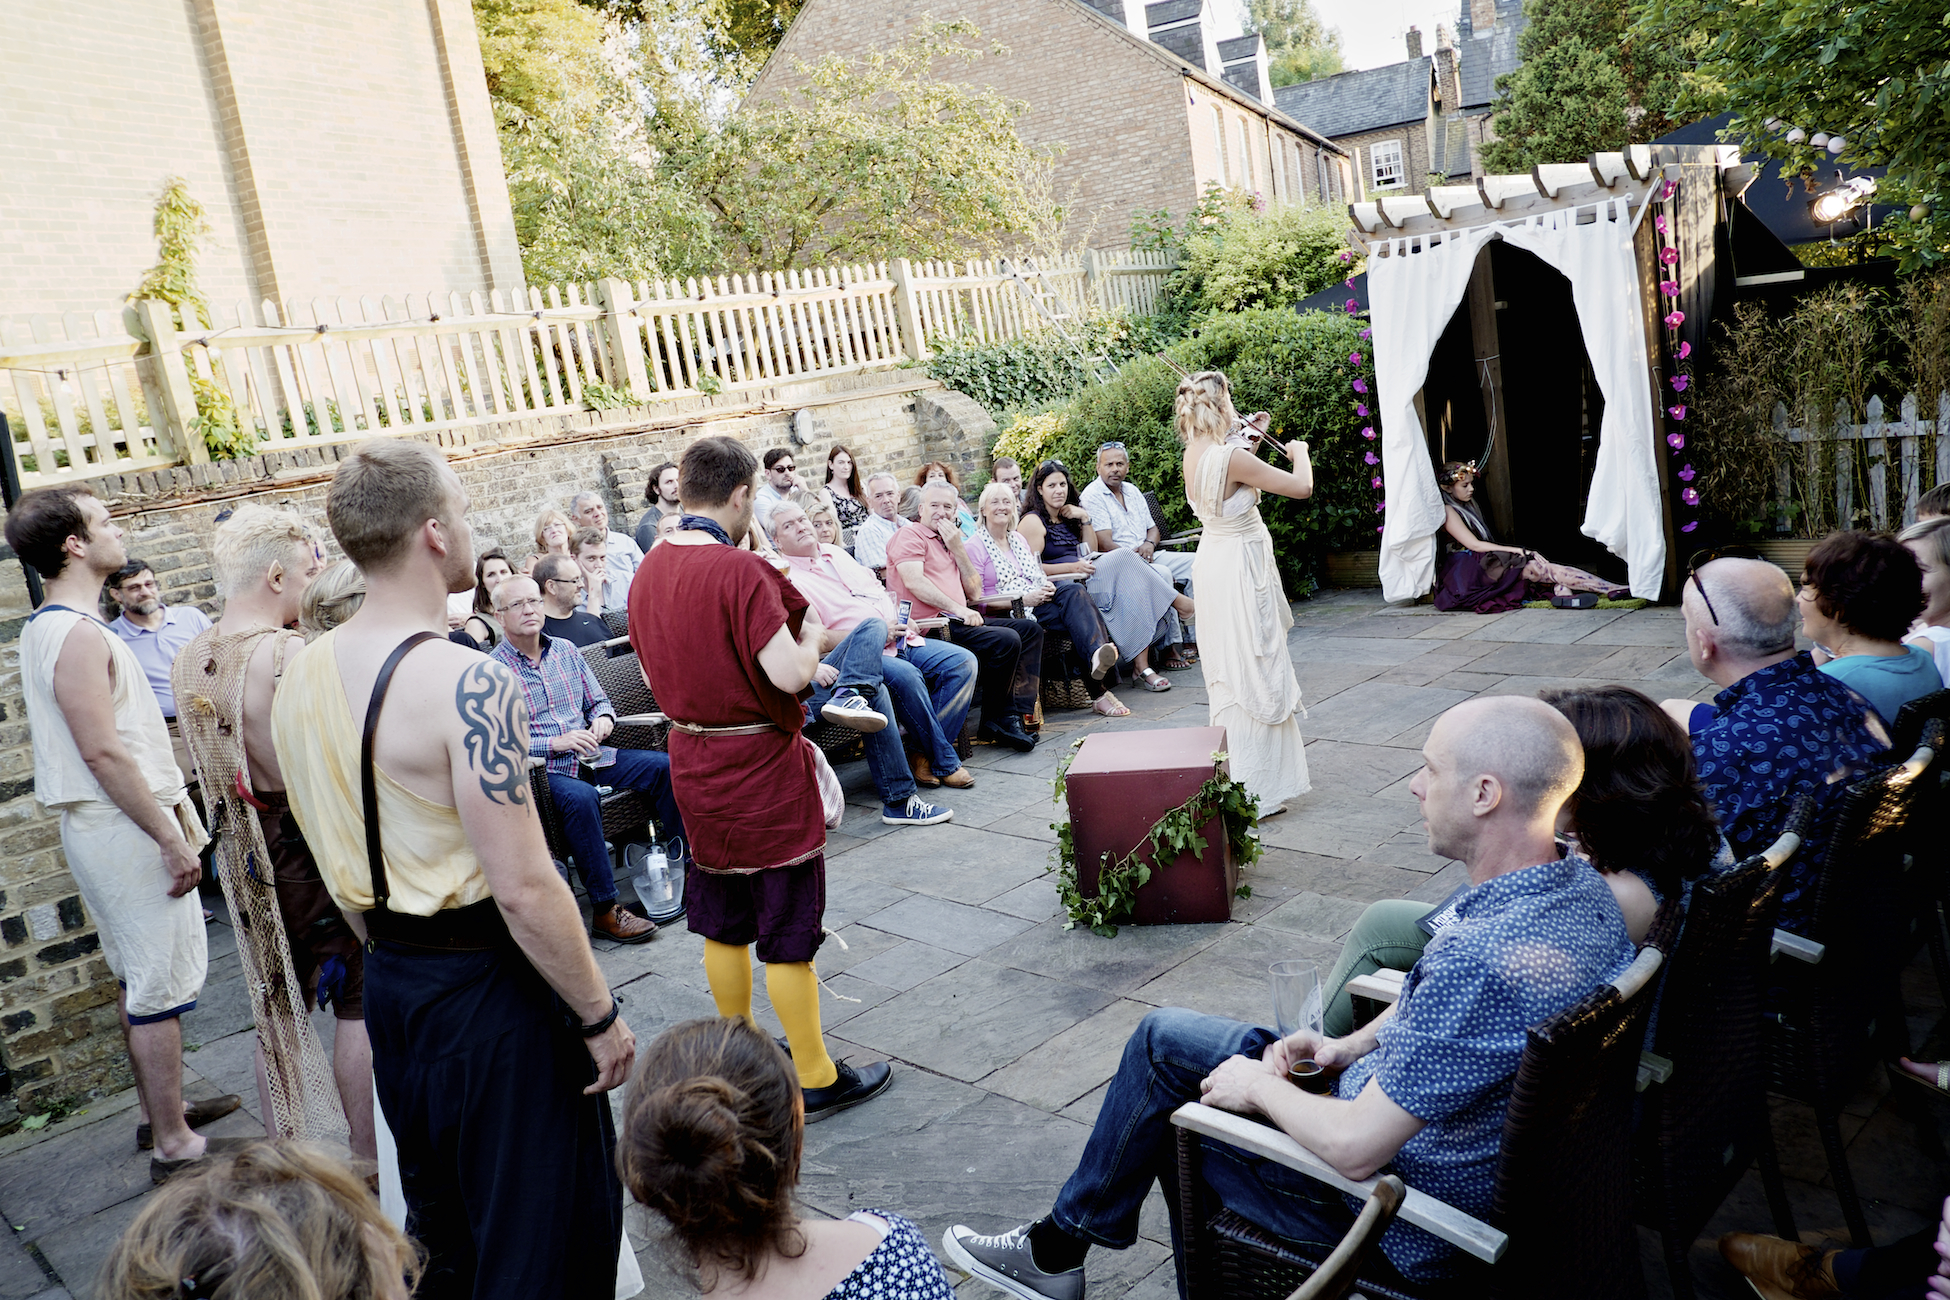 Shakespeare plays set for pub garden performances